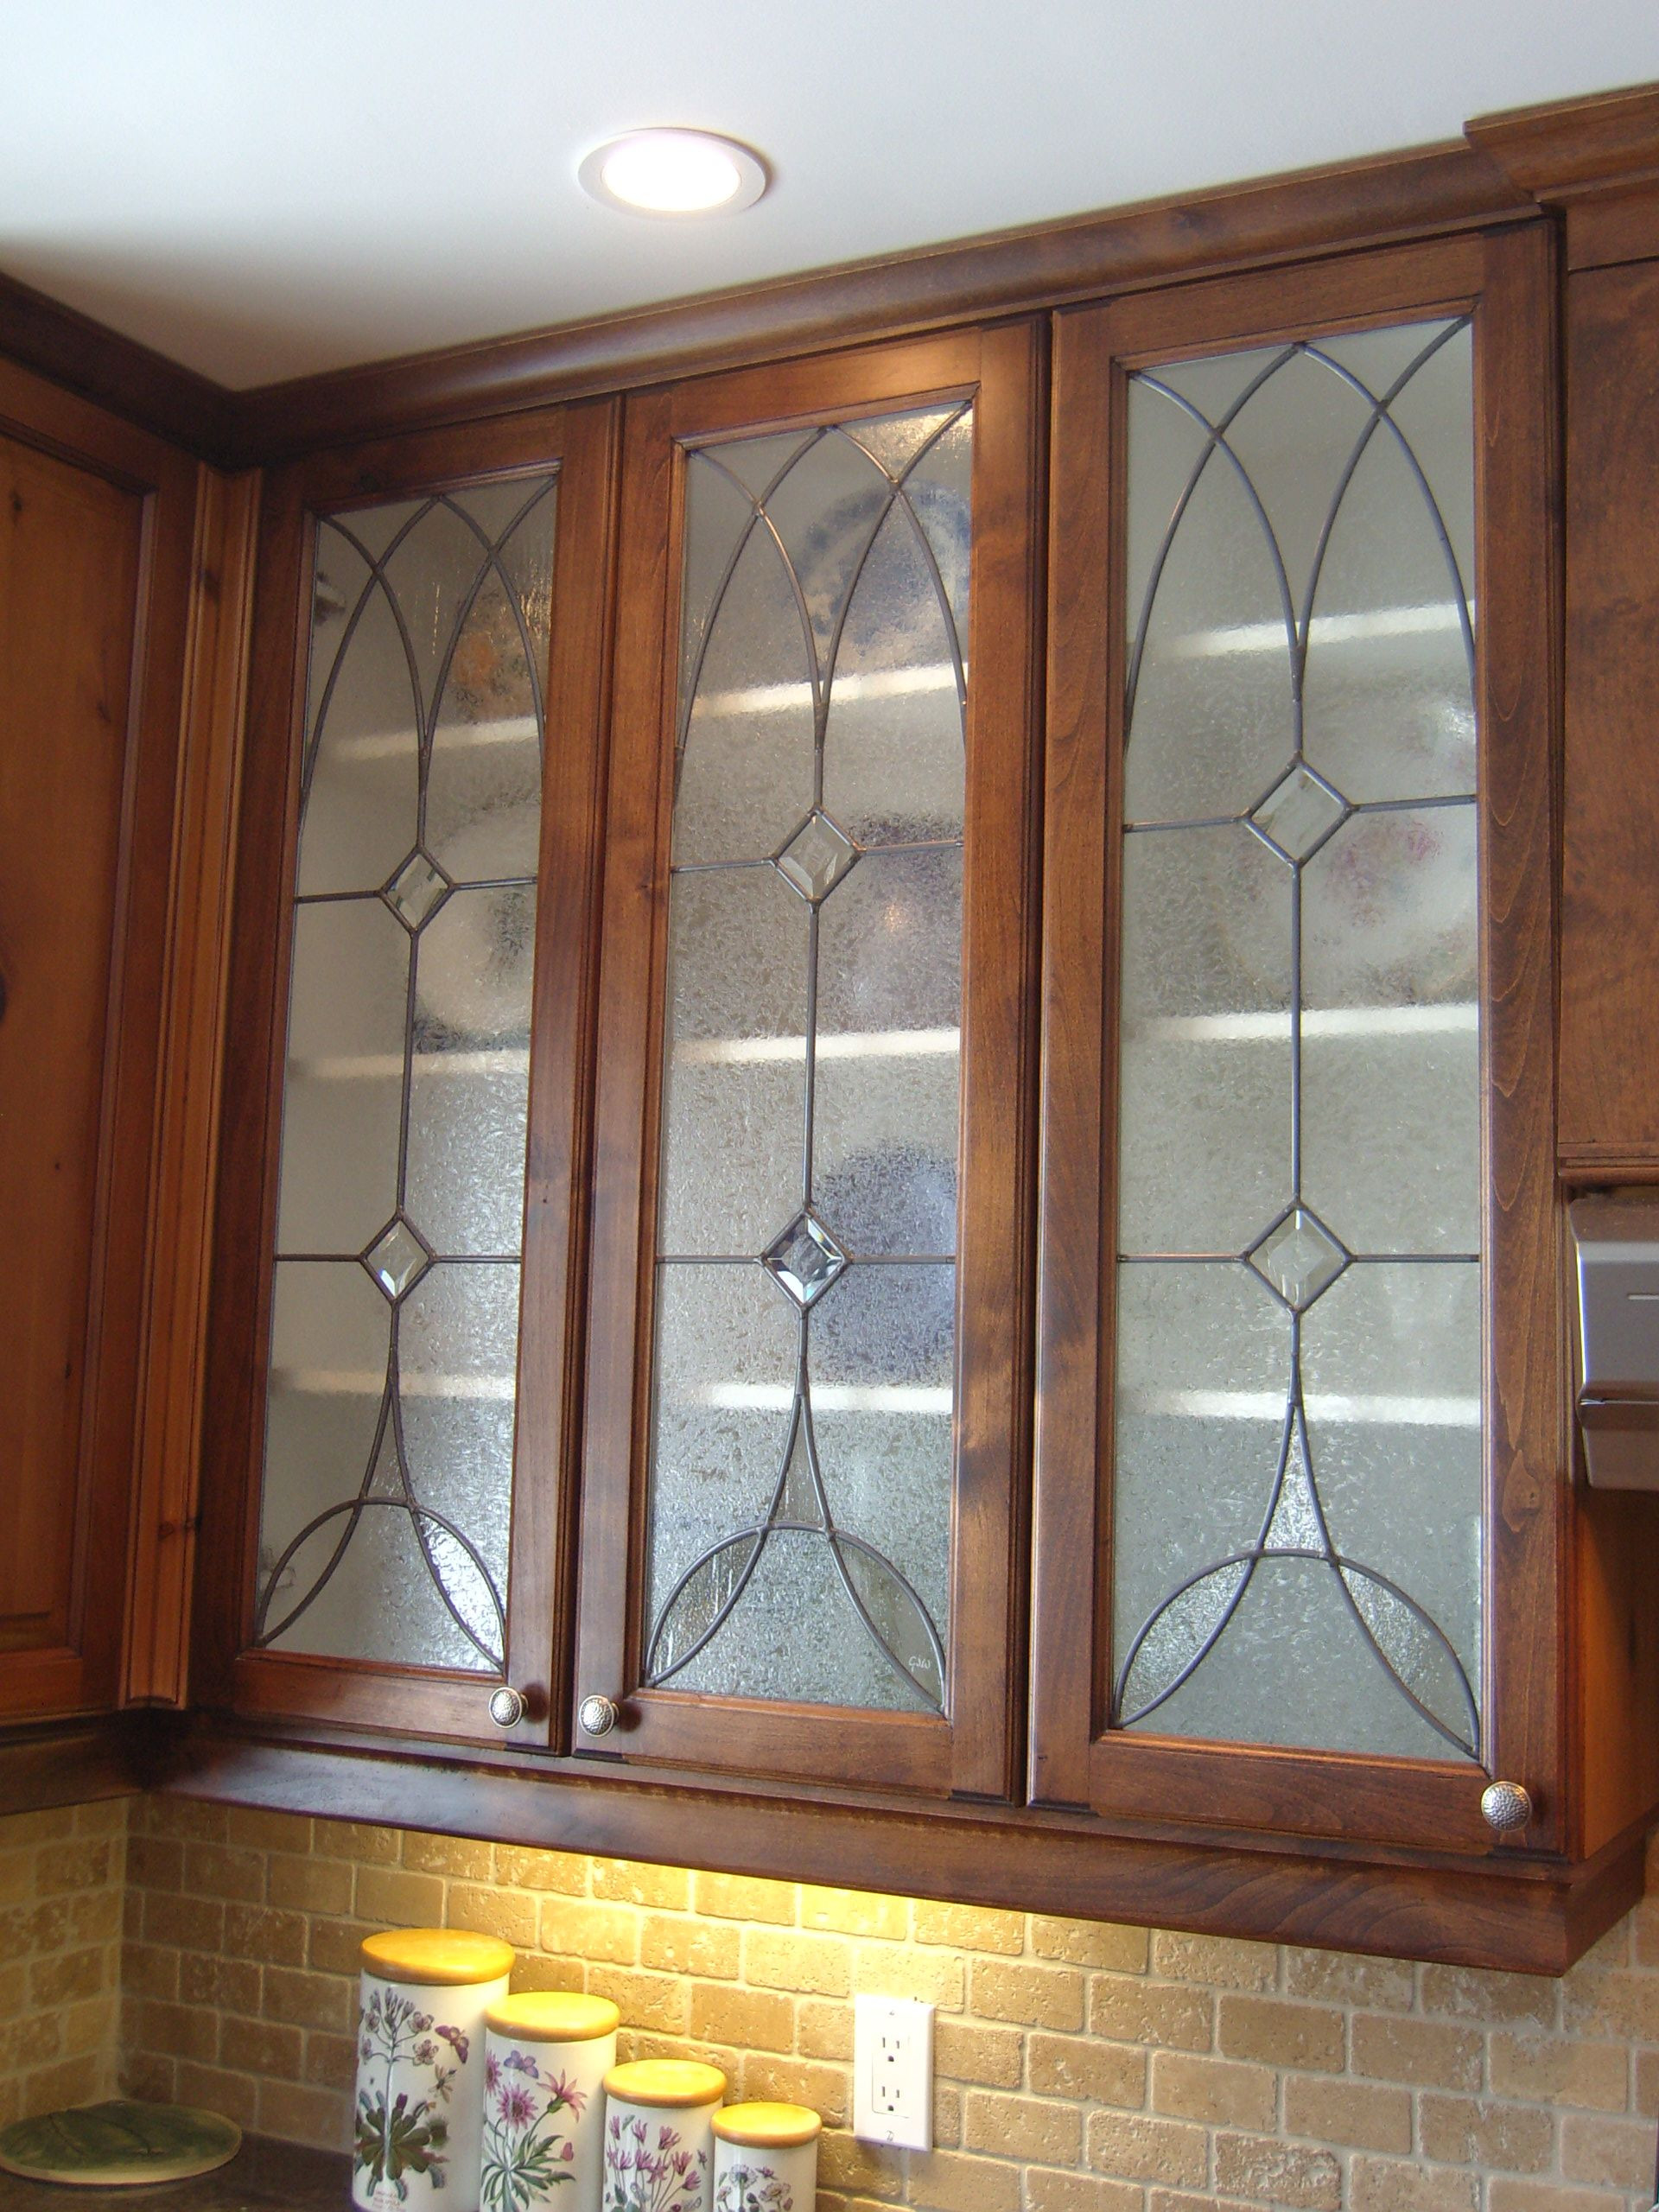 Kitchen Cabinet Doors with Glass Panels Awesome Kitchen Cabinet Stained Glass Panels by Gary Wilkinson